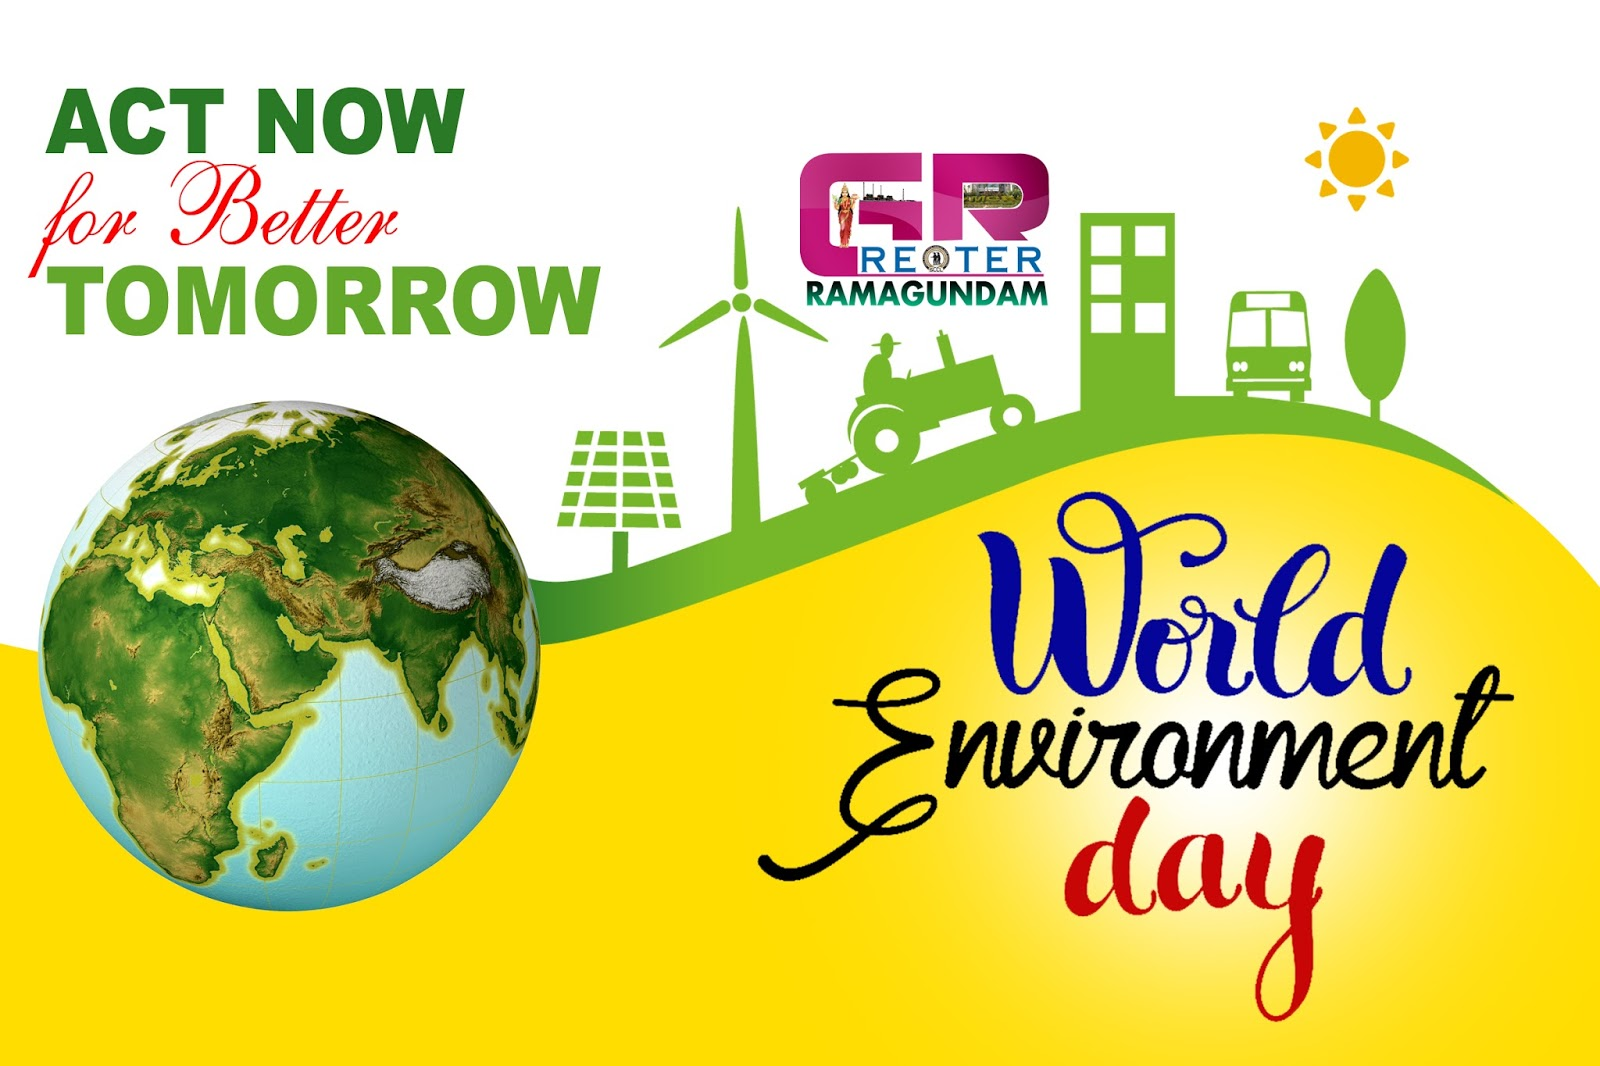 Poster design environment - World Environment Day Telugu Quotes Posters Wallpapers Pictures Photos